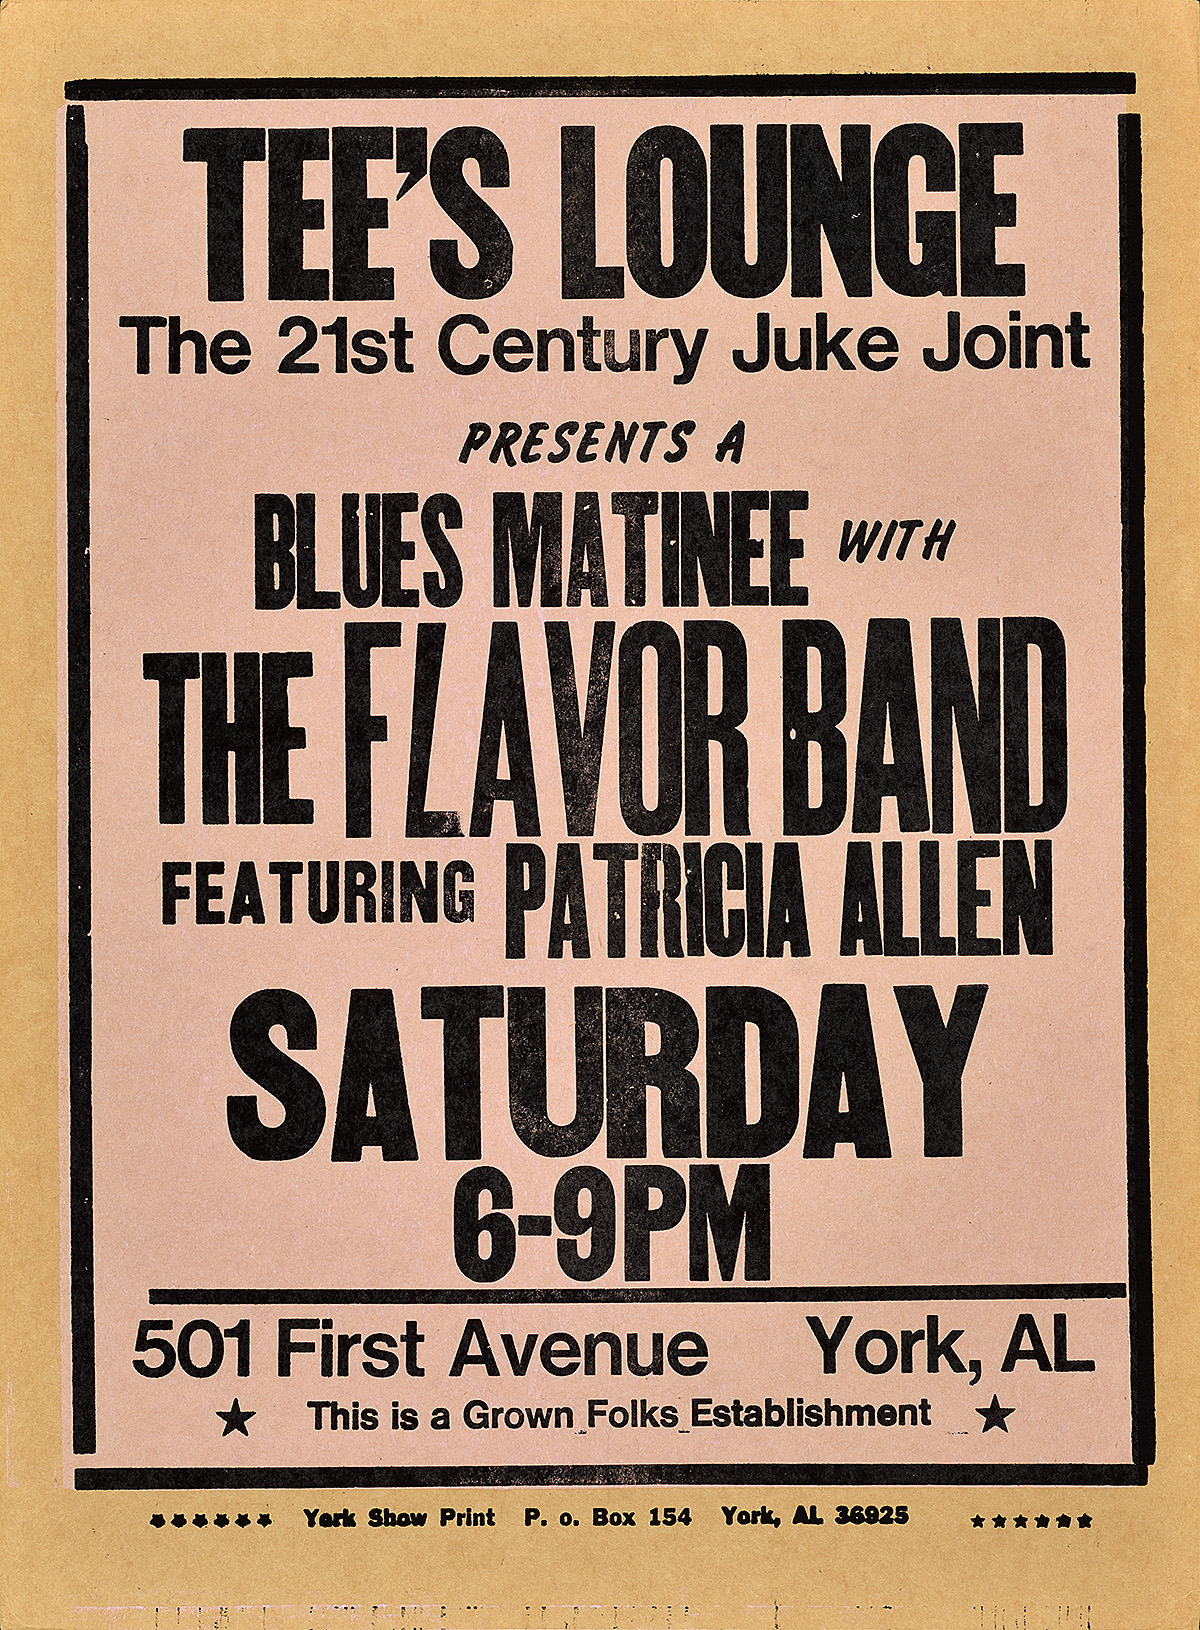 letterpress poster with a pink background. black text advertises tee's lounge and the evening's entertainment listing